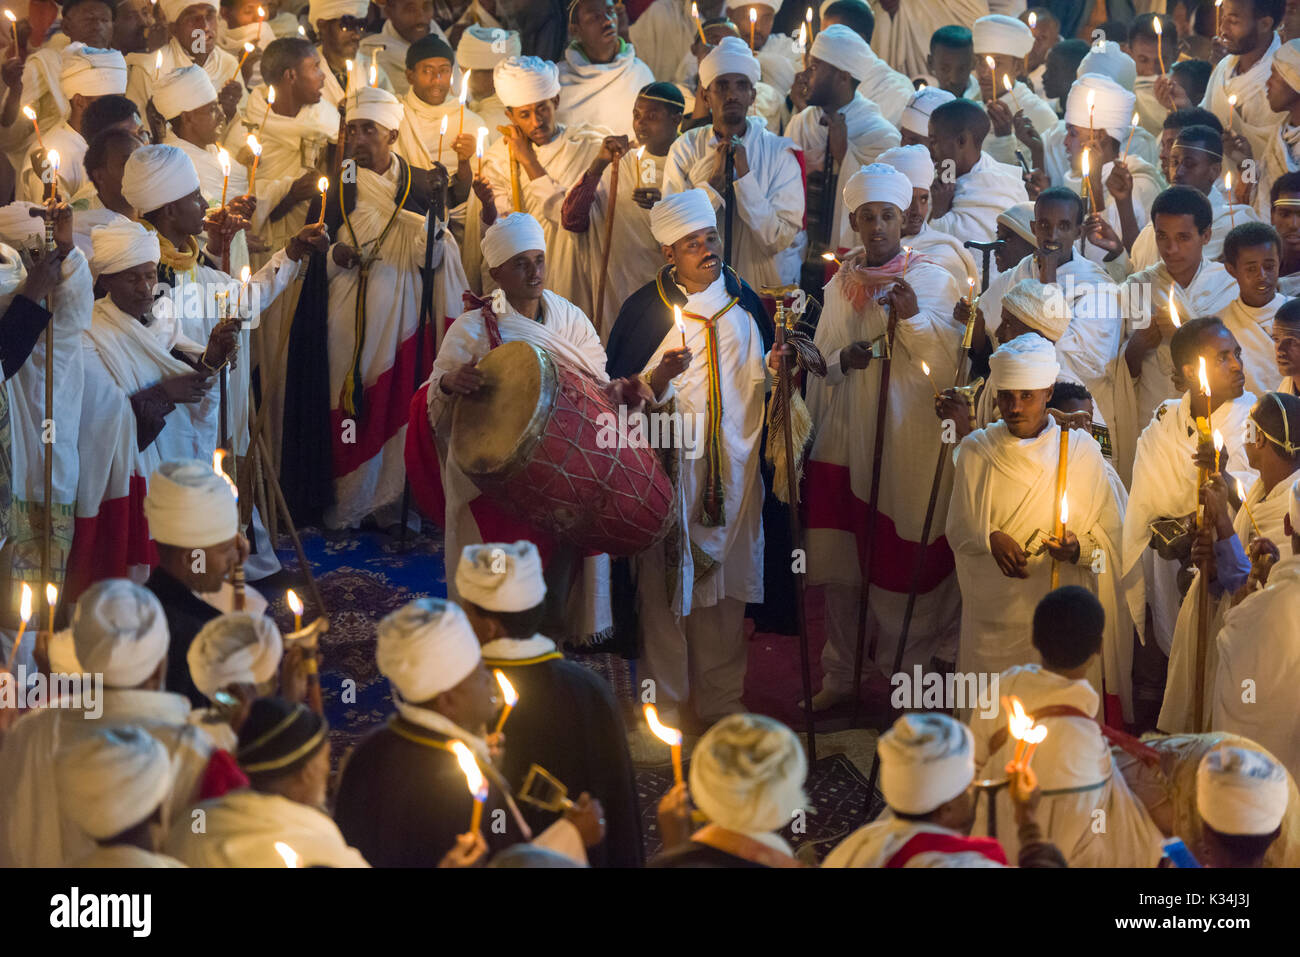 Priests chanting prayers by candlelight in the courtyard of Bet Medhane Alem church, during the prayers on Ethiopian Orthodox Easter Saturday, Lalibela, Ethiopia - Stock Image